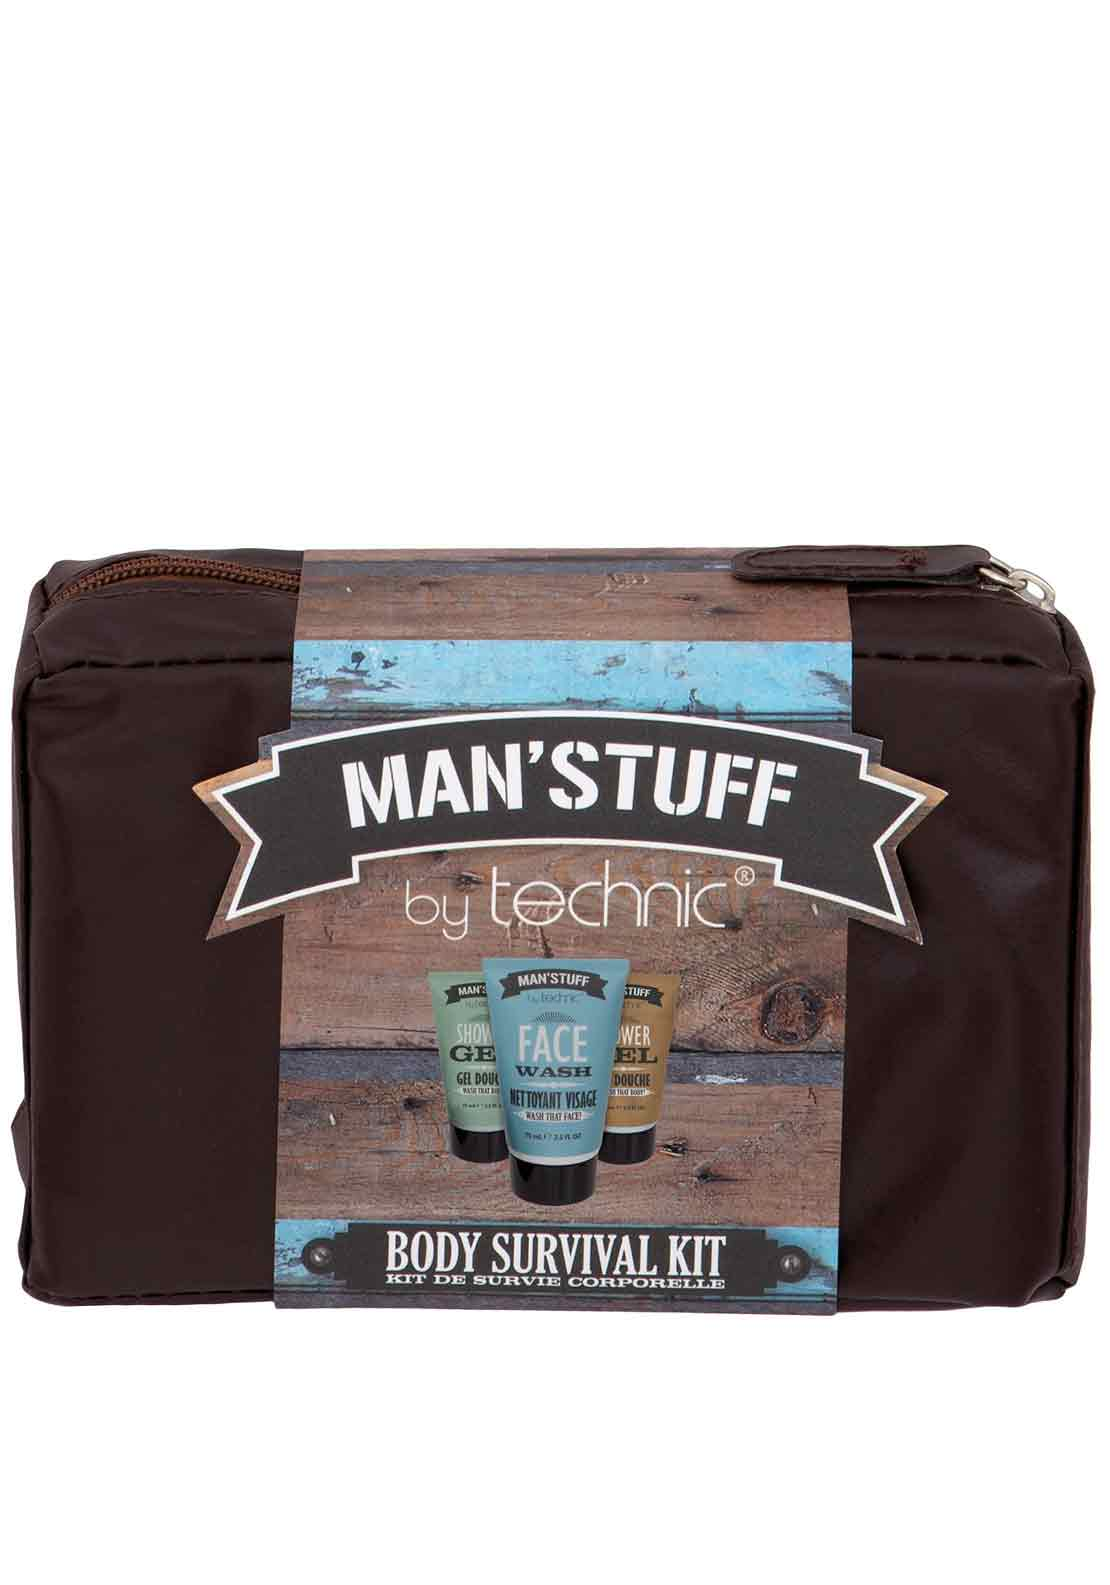 Technic Man's Stuff Wash Bag Gift Set